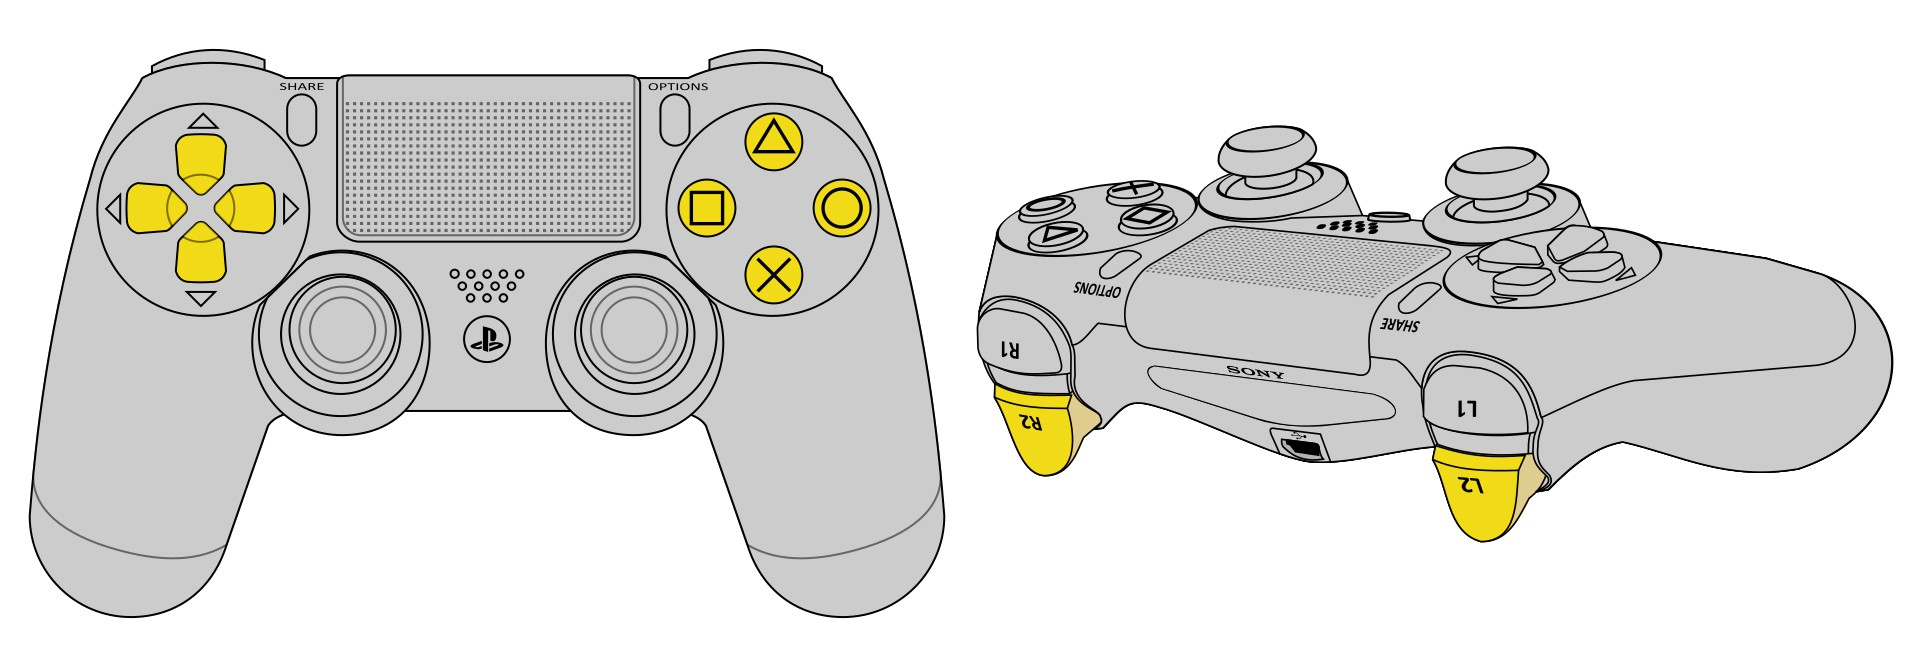 Schematic image showing the Playstation 4 controller, with the 10 relevant buttons highlighted